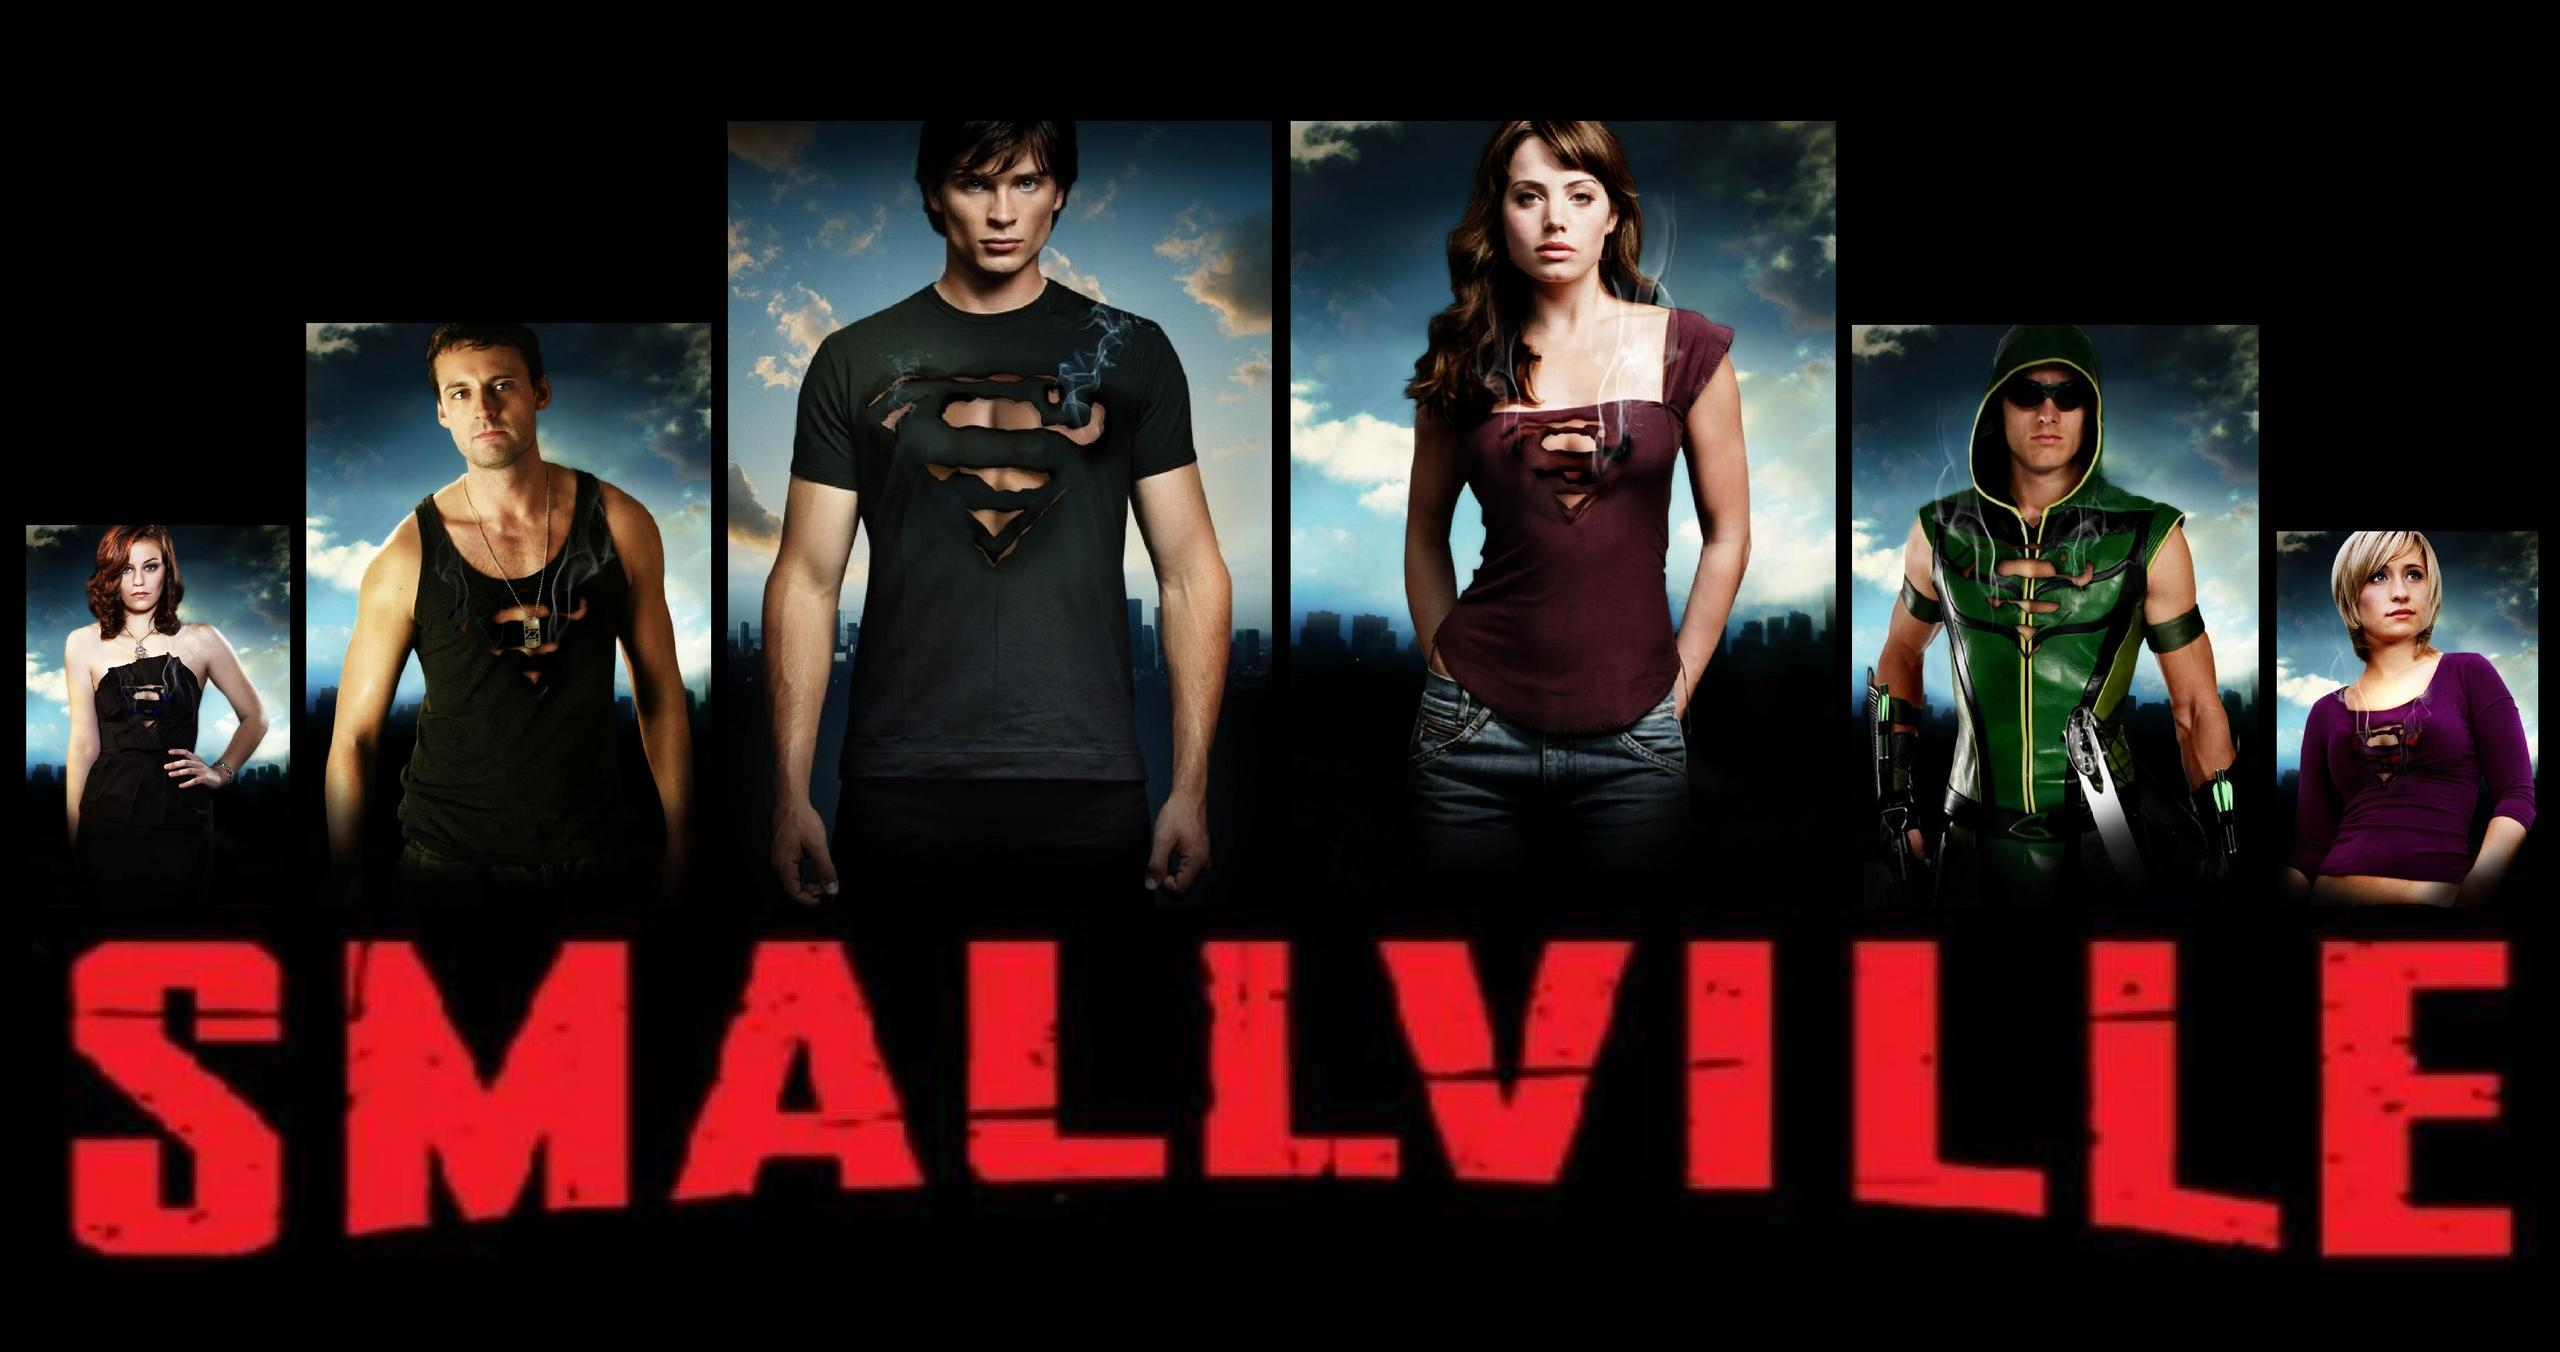 smallville images smallville widscreen hd wallpaper and